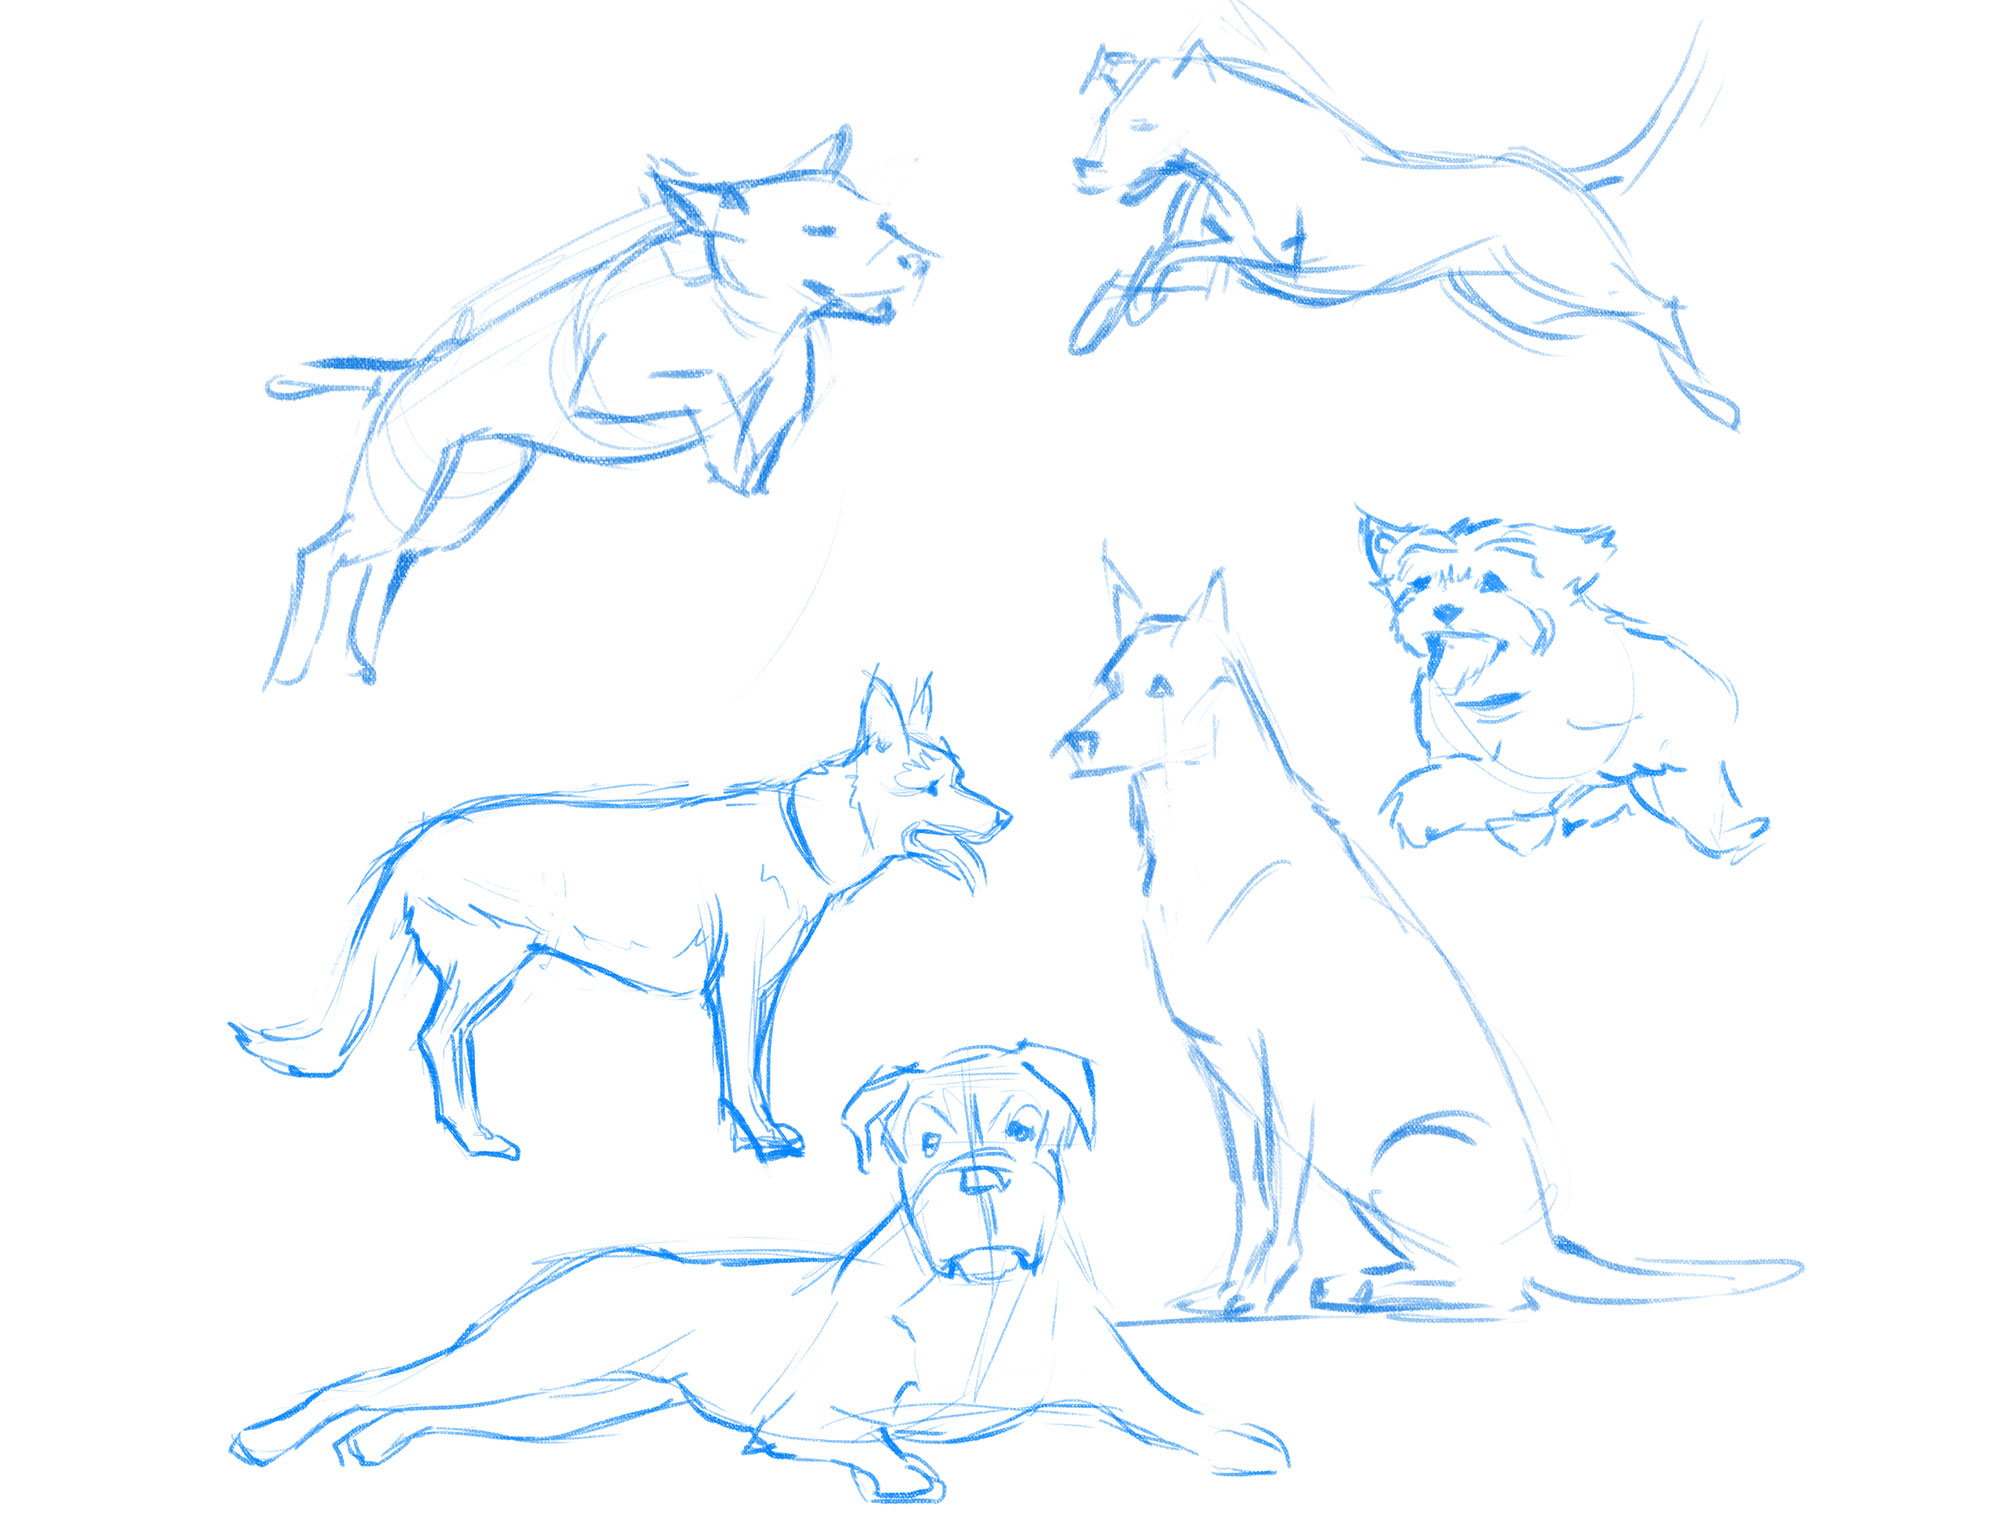 How to draw a dog: sketches